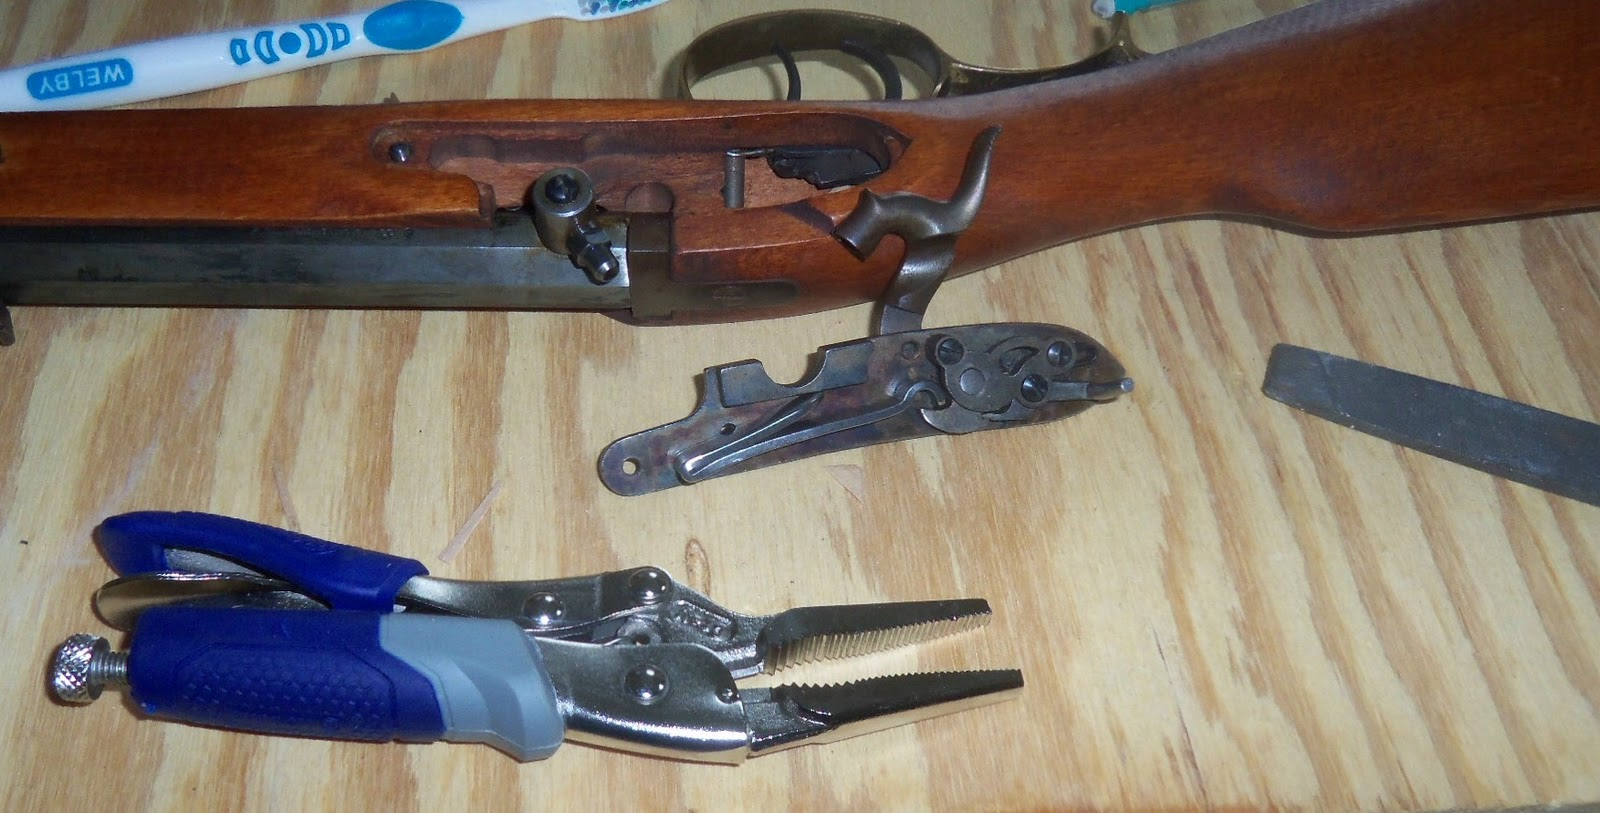 Woodsrunner's trail: The one hour gunsmith puts a new